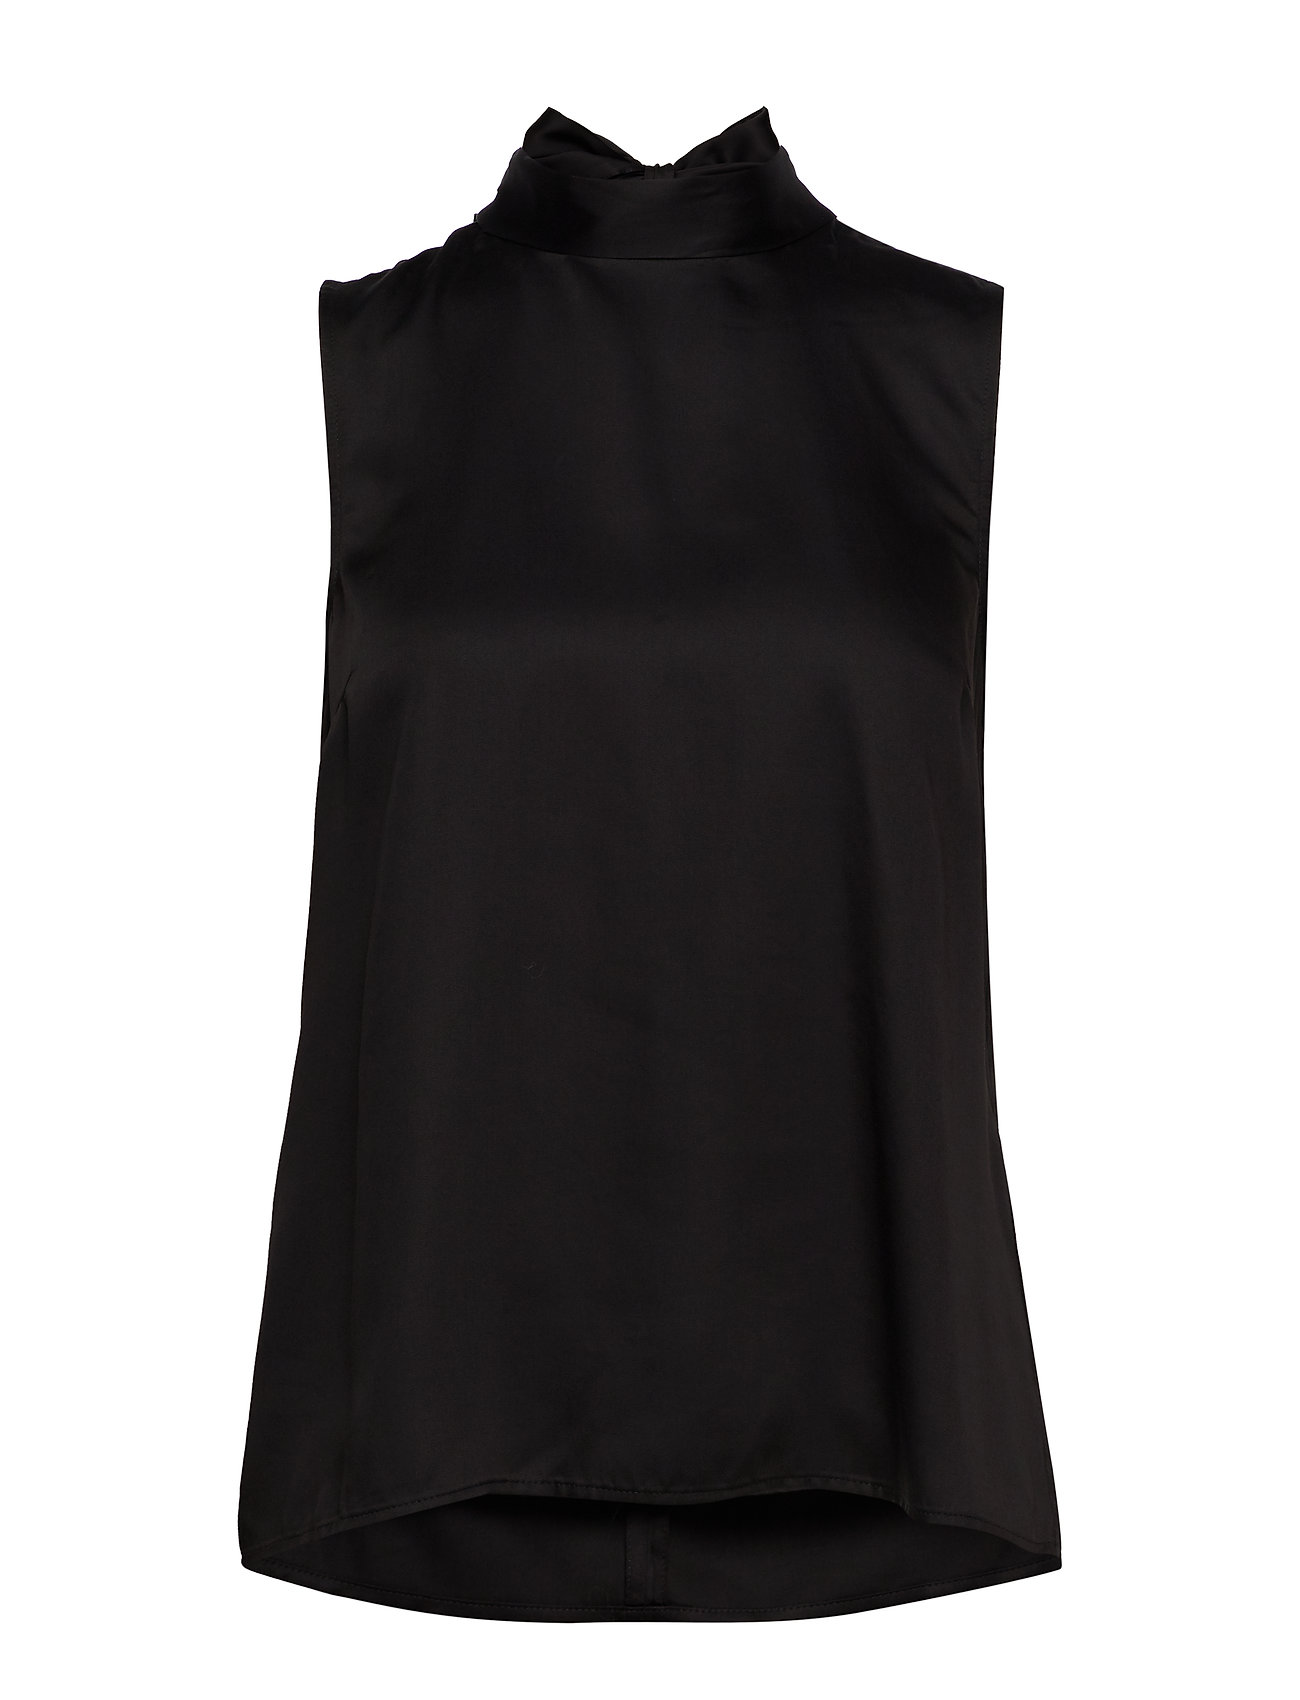 Selected Femme SLFQUINCY SL NECK TIE TOP B - BLACK